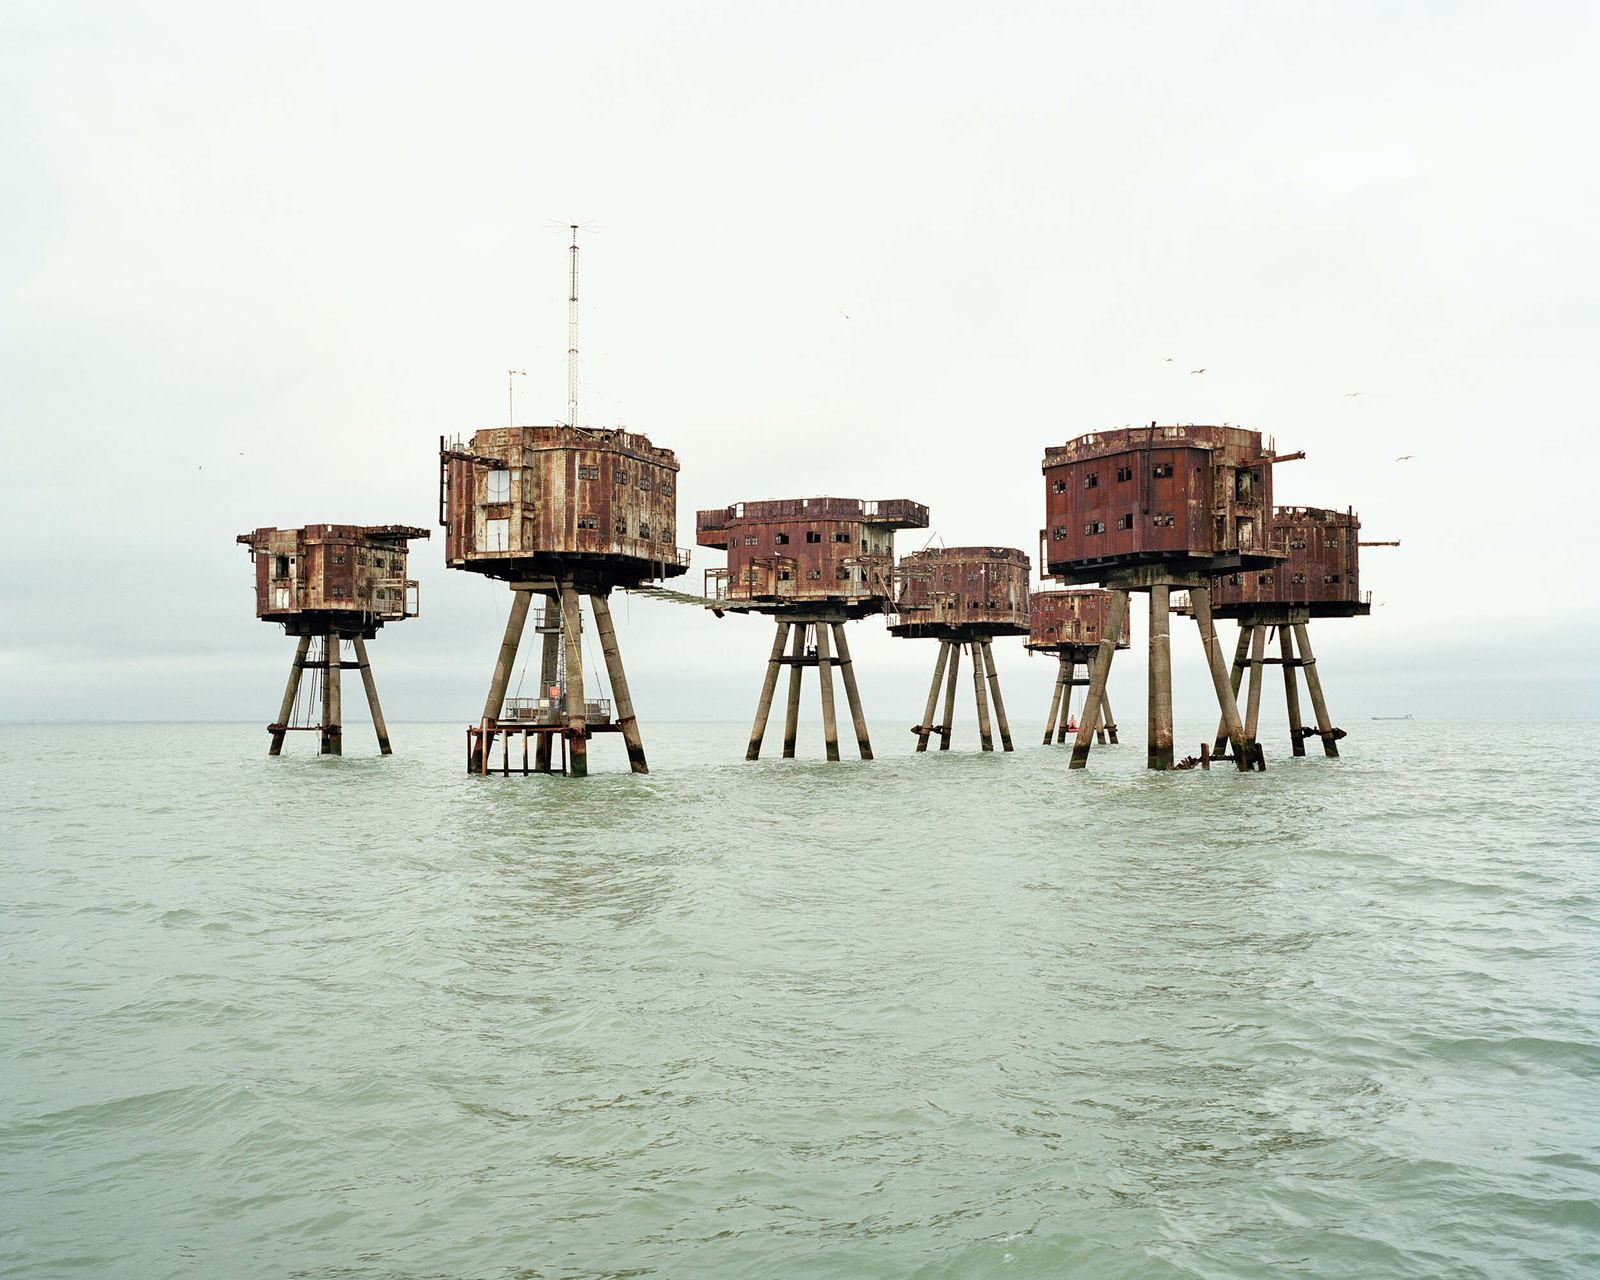 Red Sands, Thames Estuary. The structures are an example of Maunsell Sea Forts, built during the Second ...